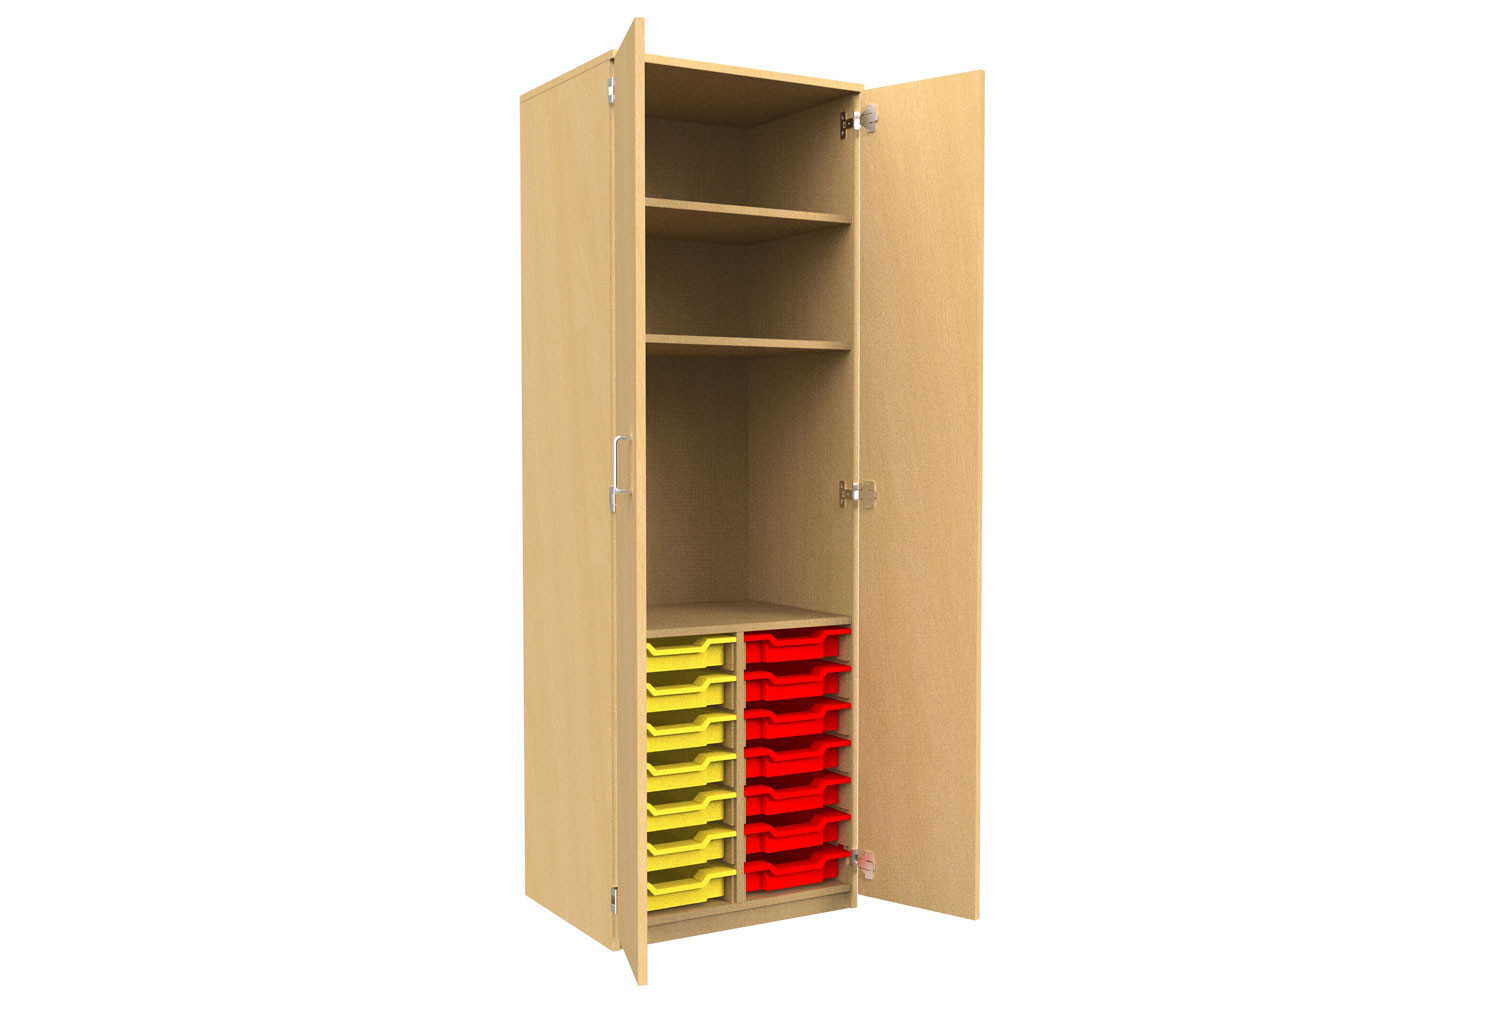 Tall Tray Storage 2 Shelf Cupboard With Full Doors Furniture At Work